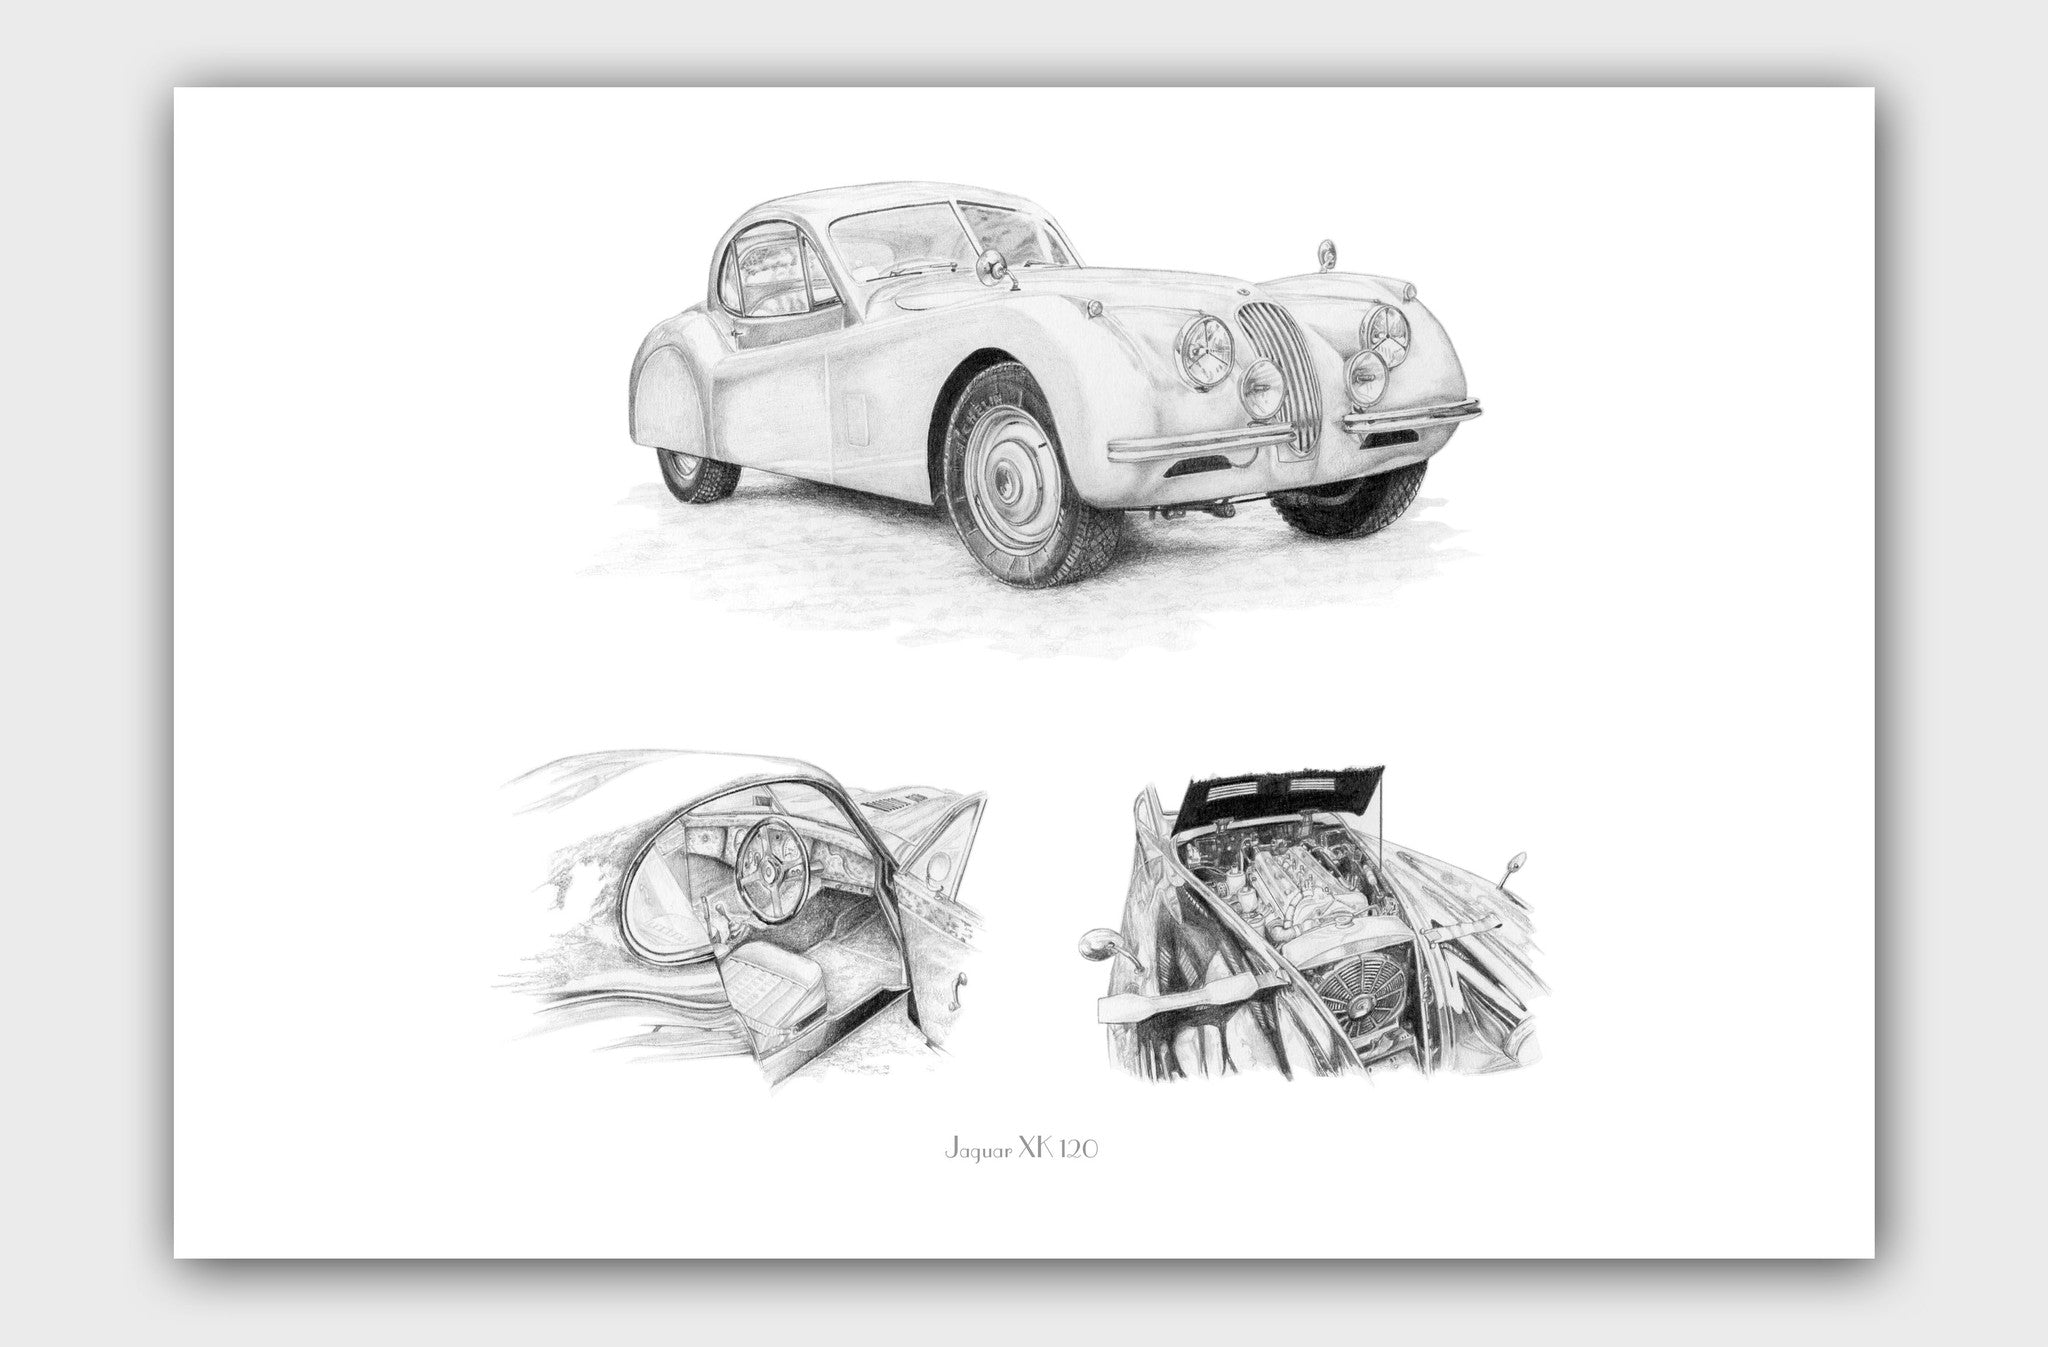 Smooth and Elegant- Jaguar XK 120 (Connoisseur's Edition)